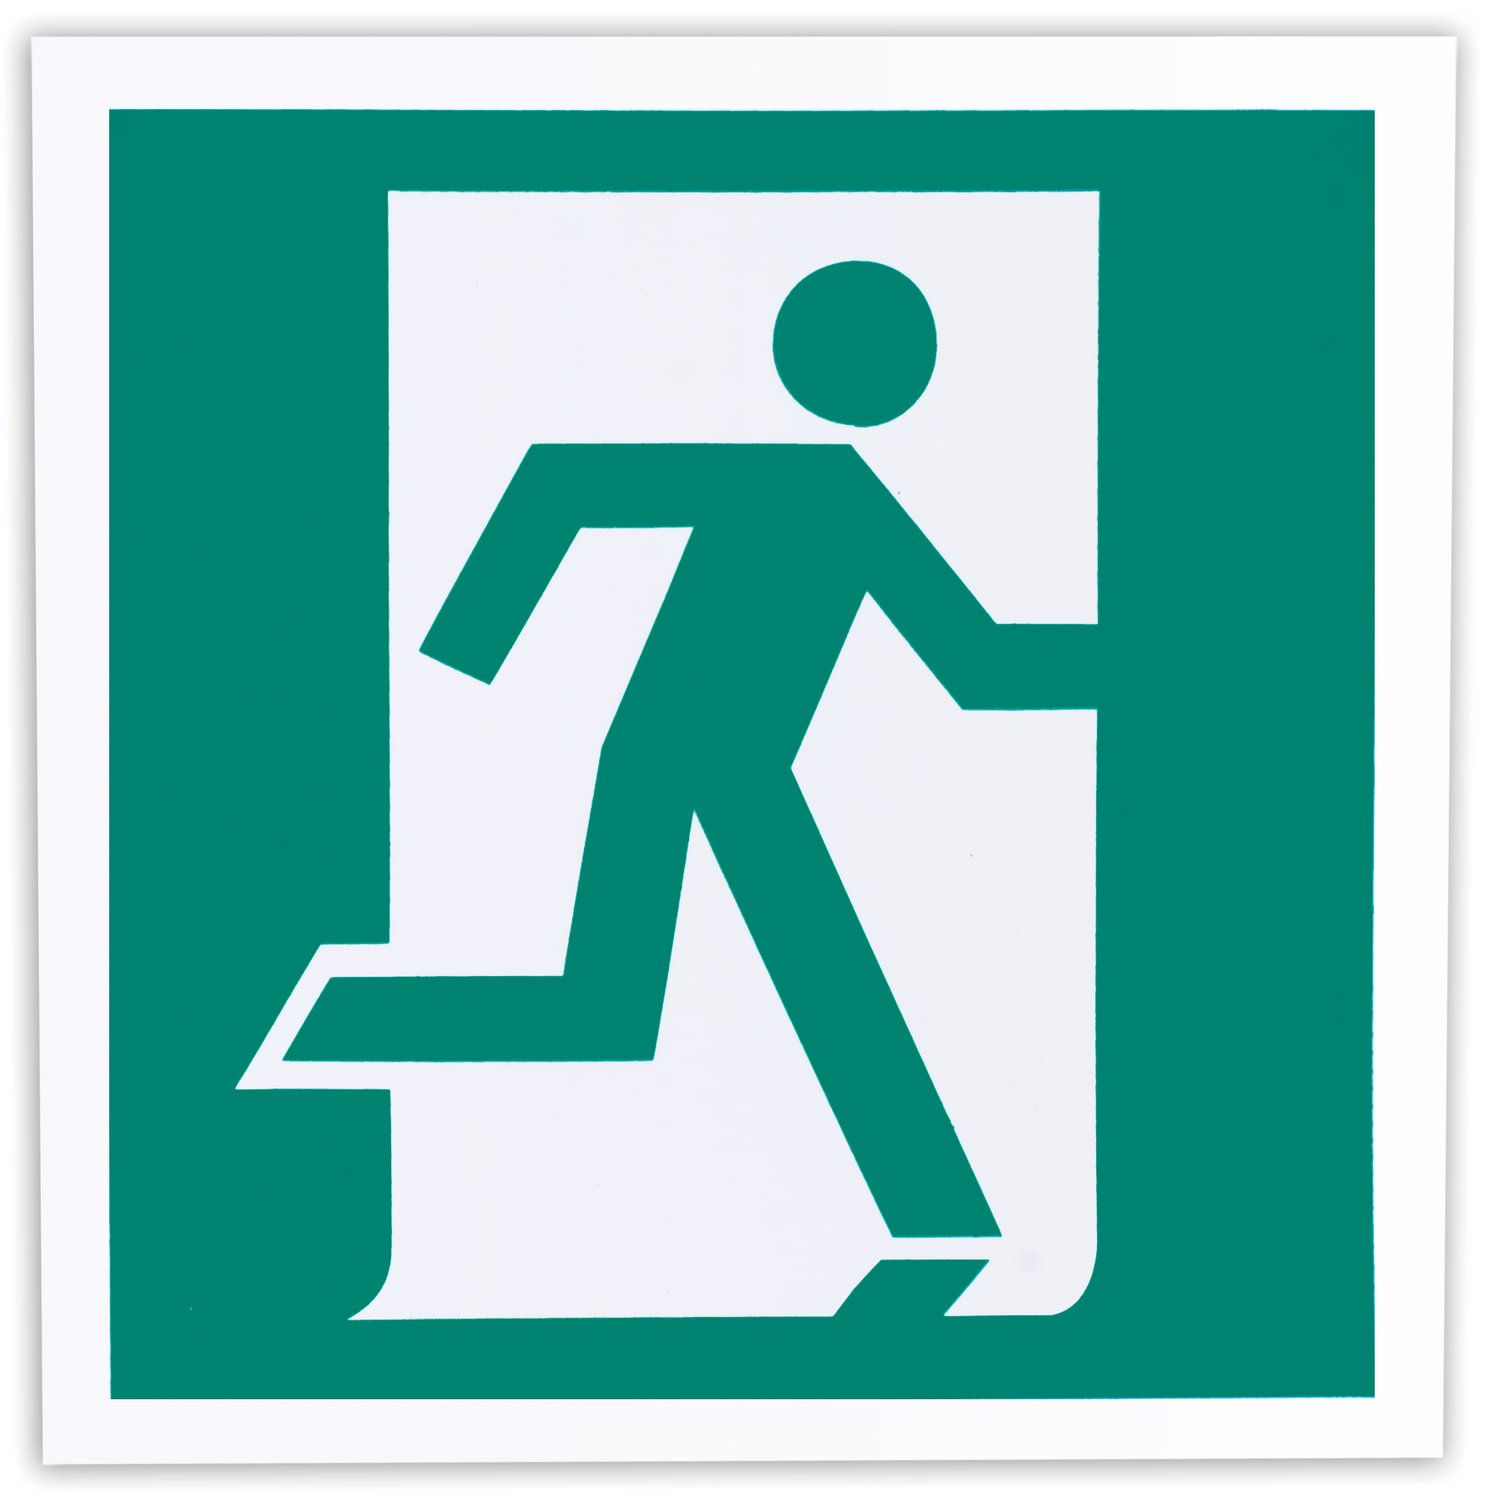 """Evacuation sign """"Exit here (right-sided)"""", 200x200 mm, self-adhesive, photoluminescent"""